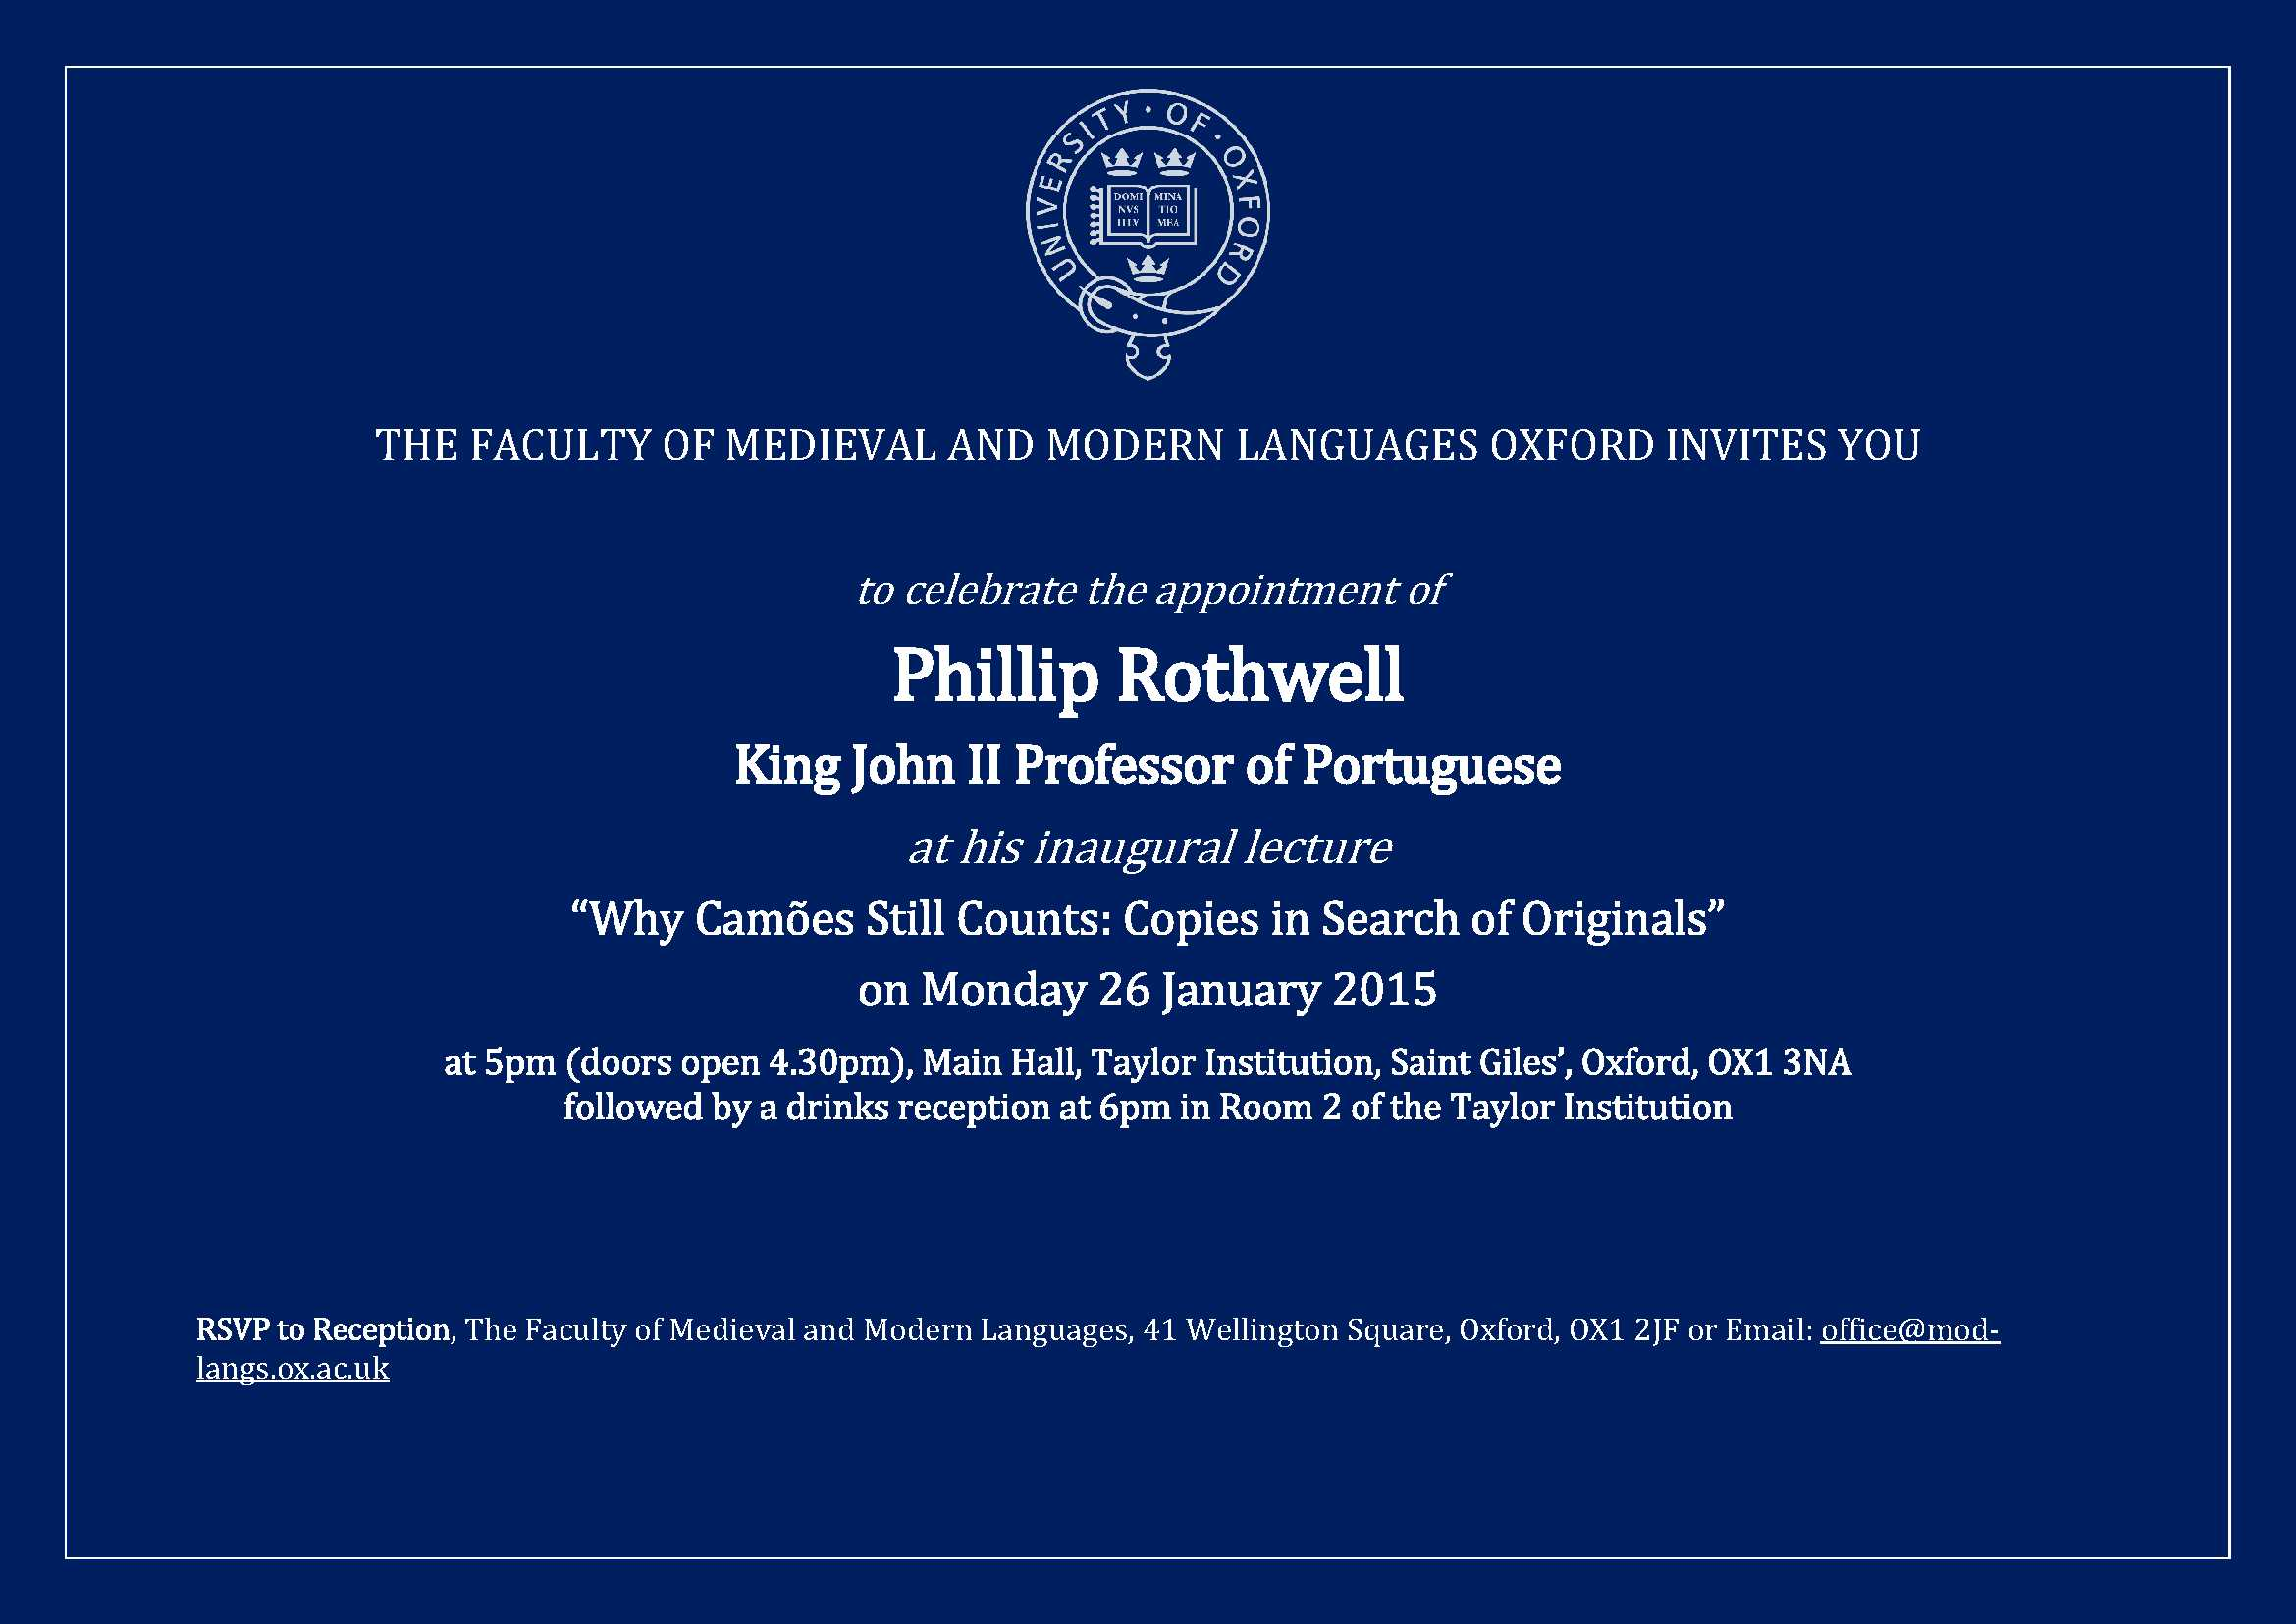 Phillip Rothwell Inaugural Lecture | Faculty of Medieval ...